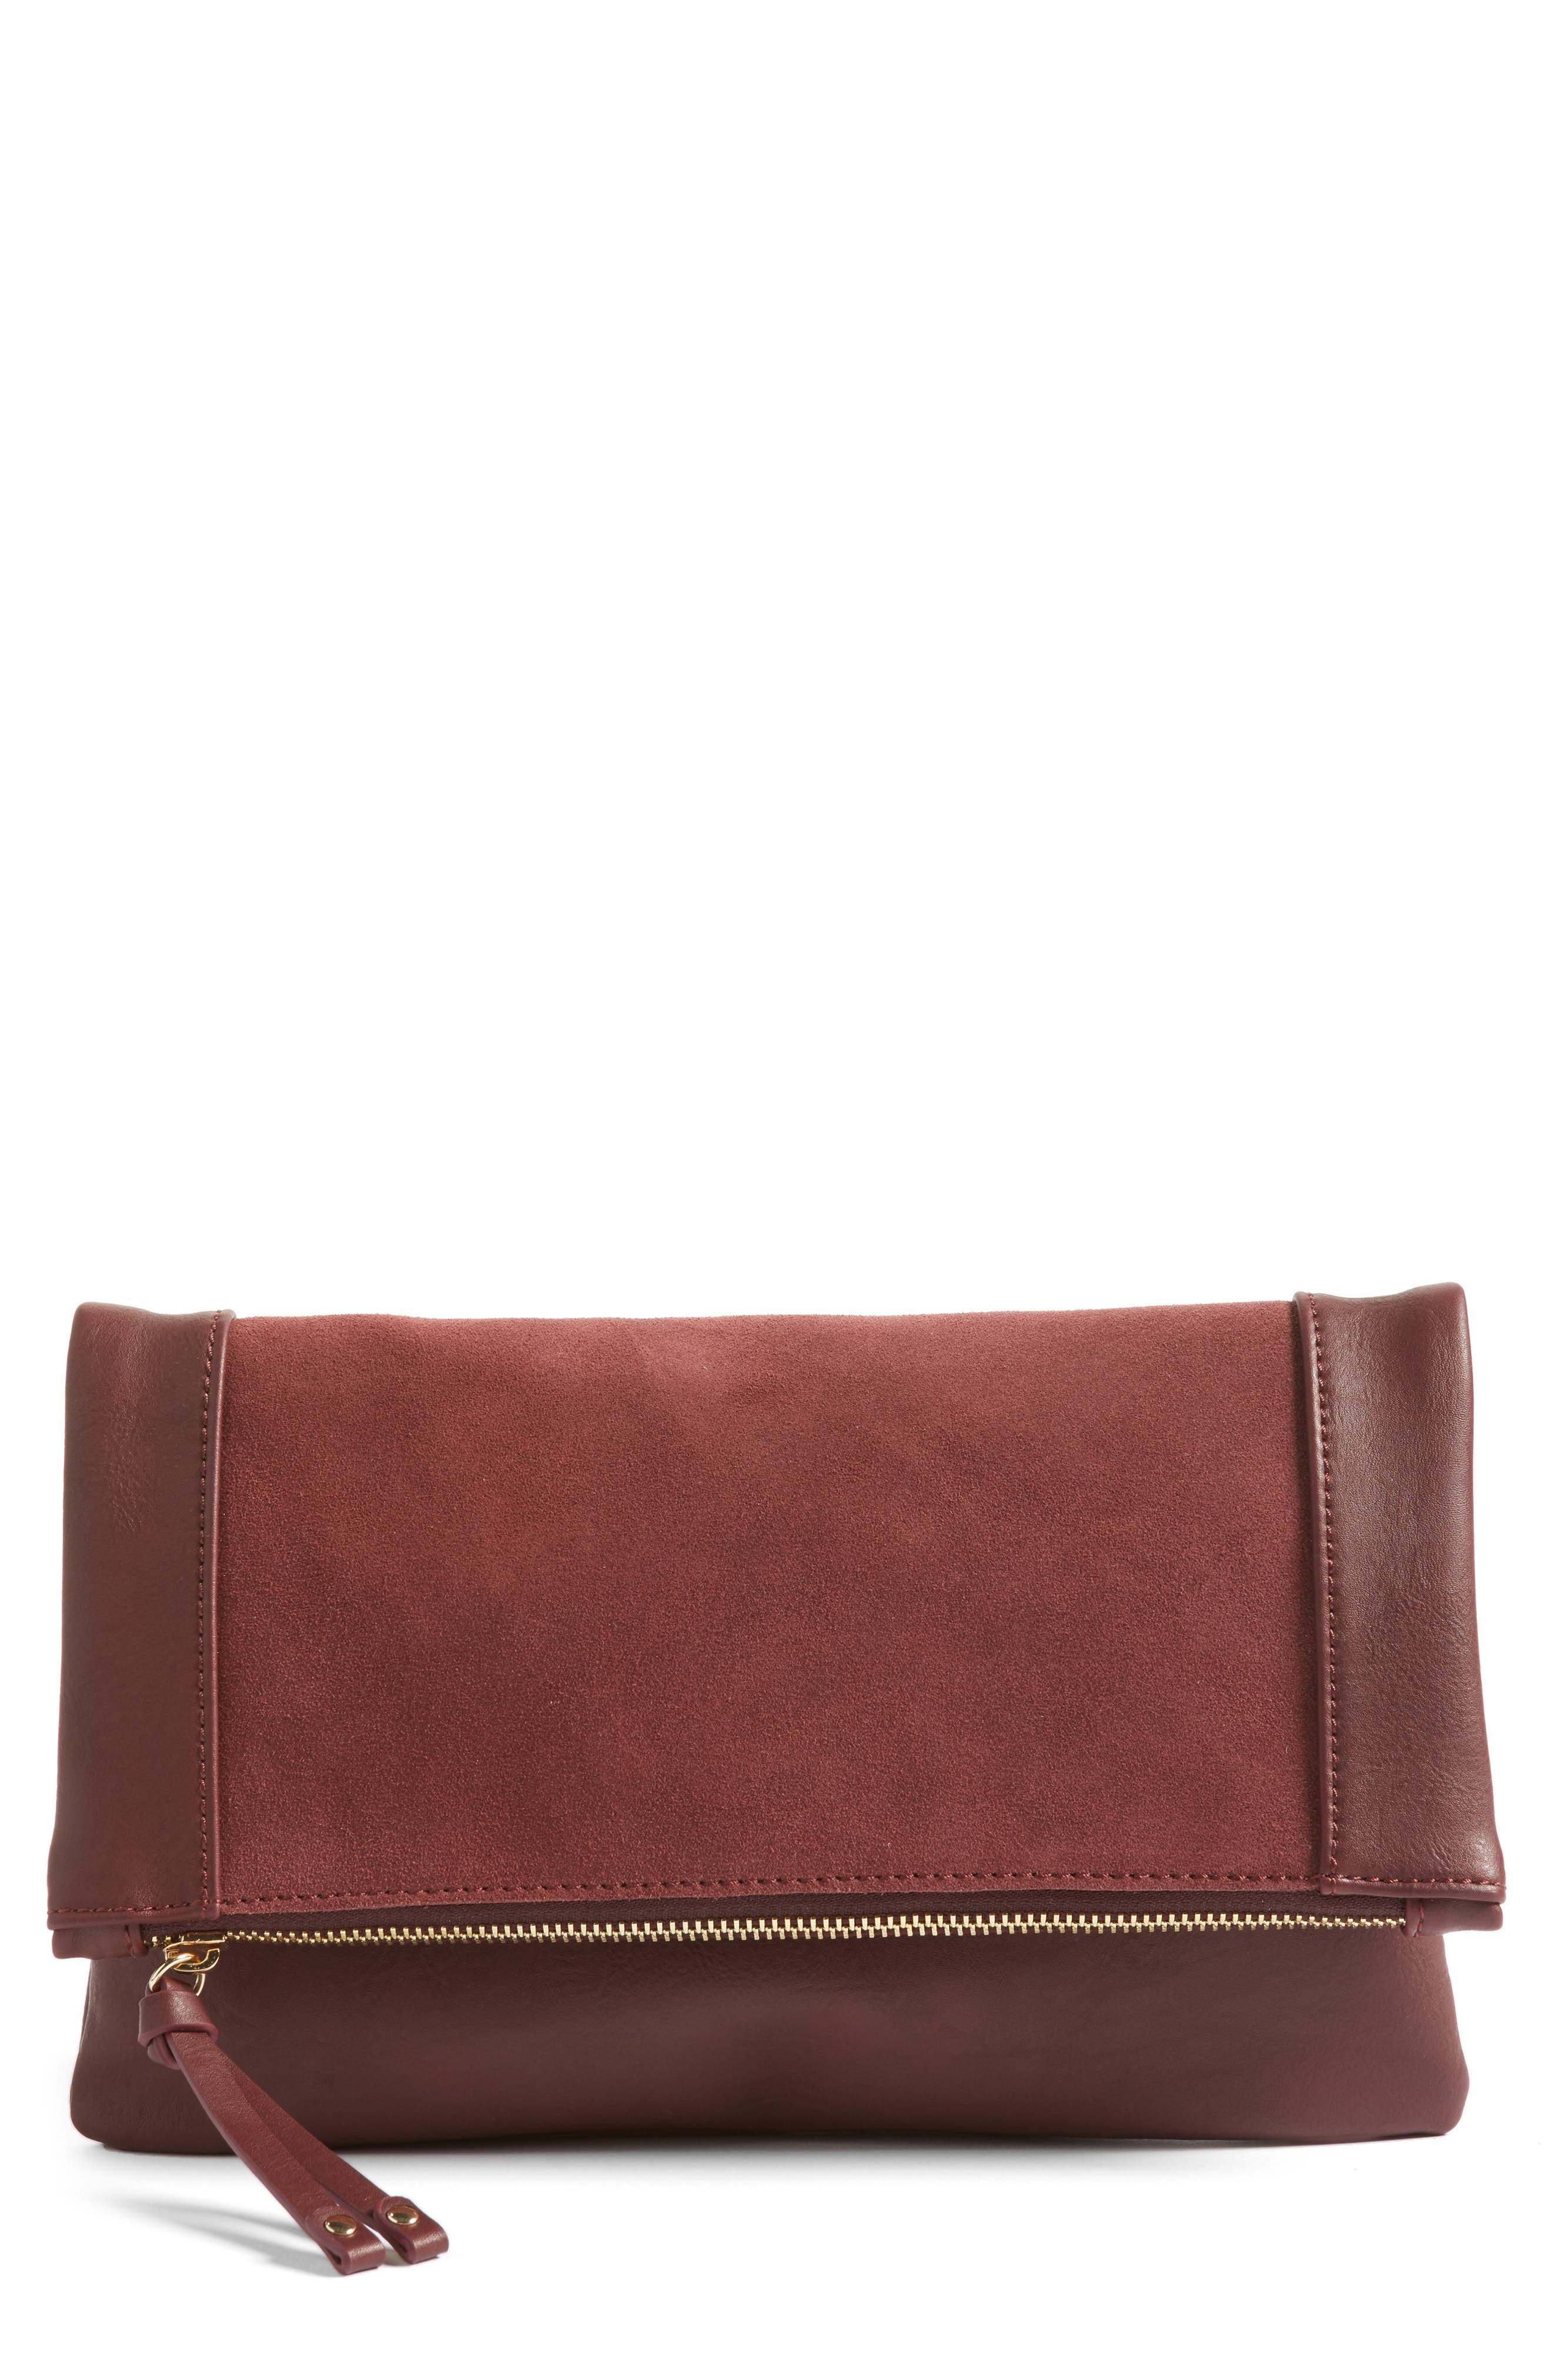 Main Image - Sole Society Jemma Suede Clutch